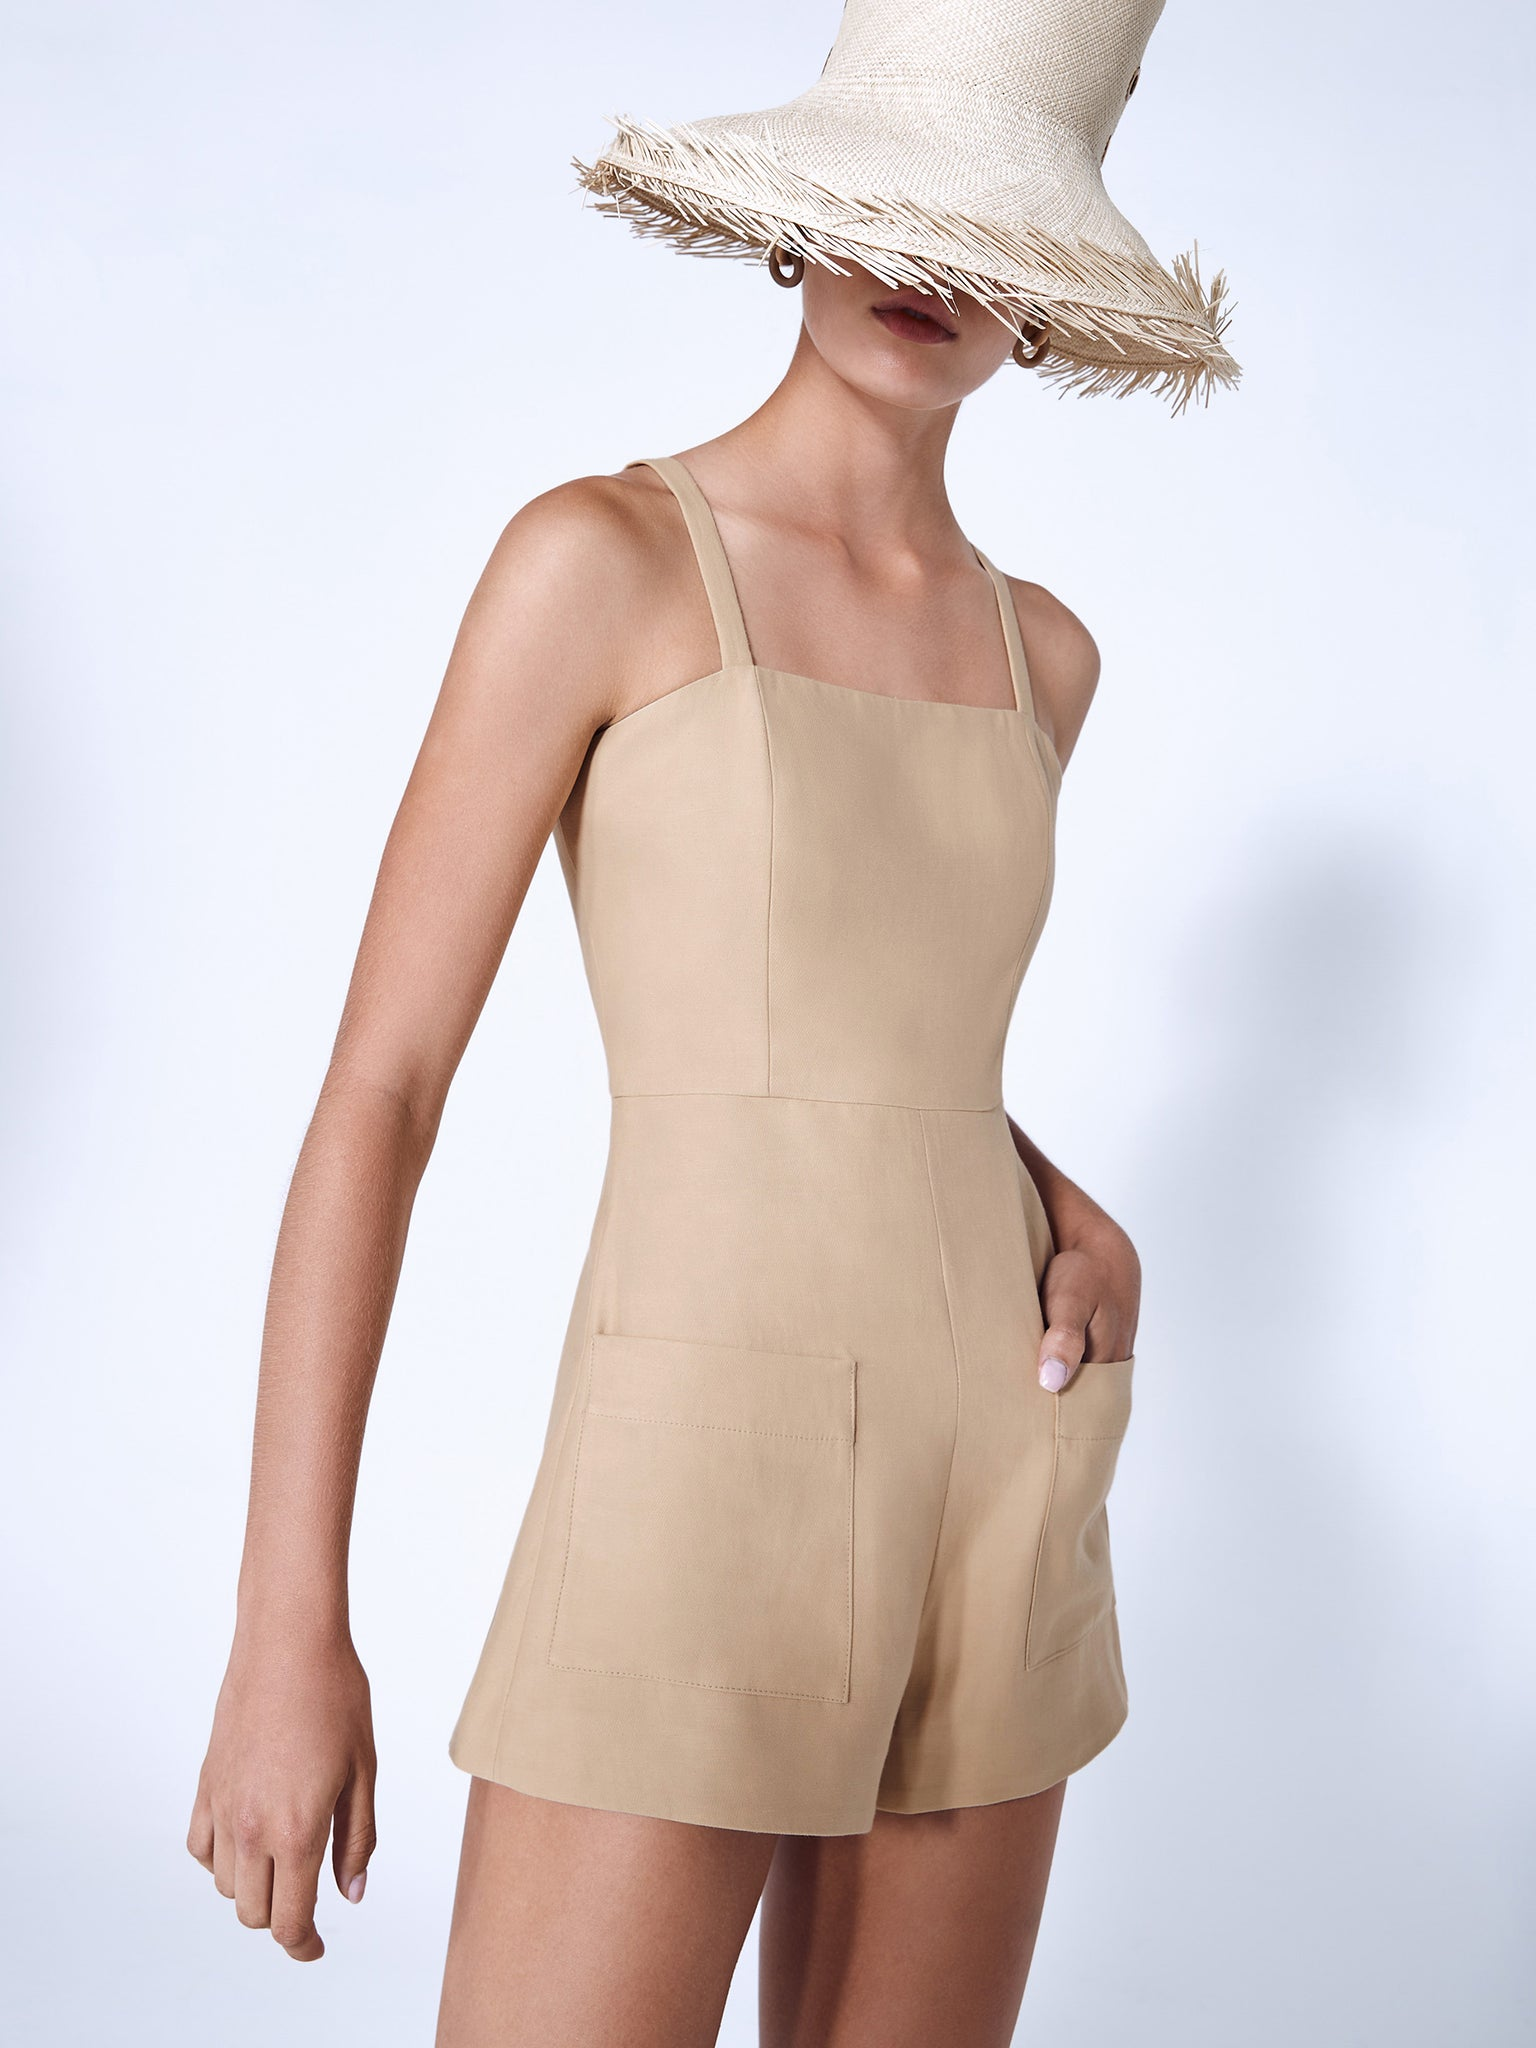 Alexis Arlington romper in beige featuring square neckline and two front pockets - Rear View